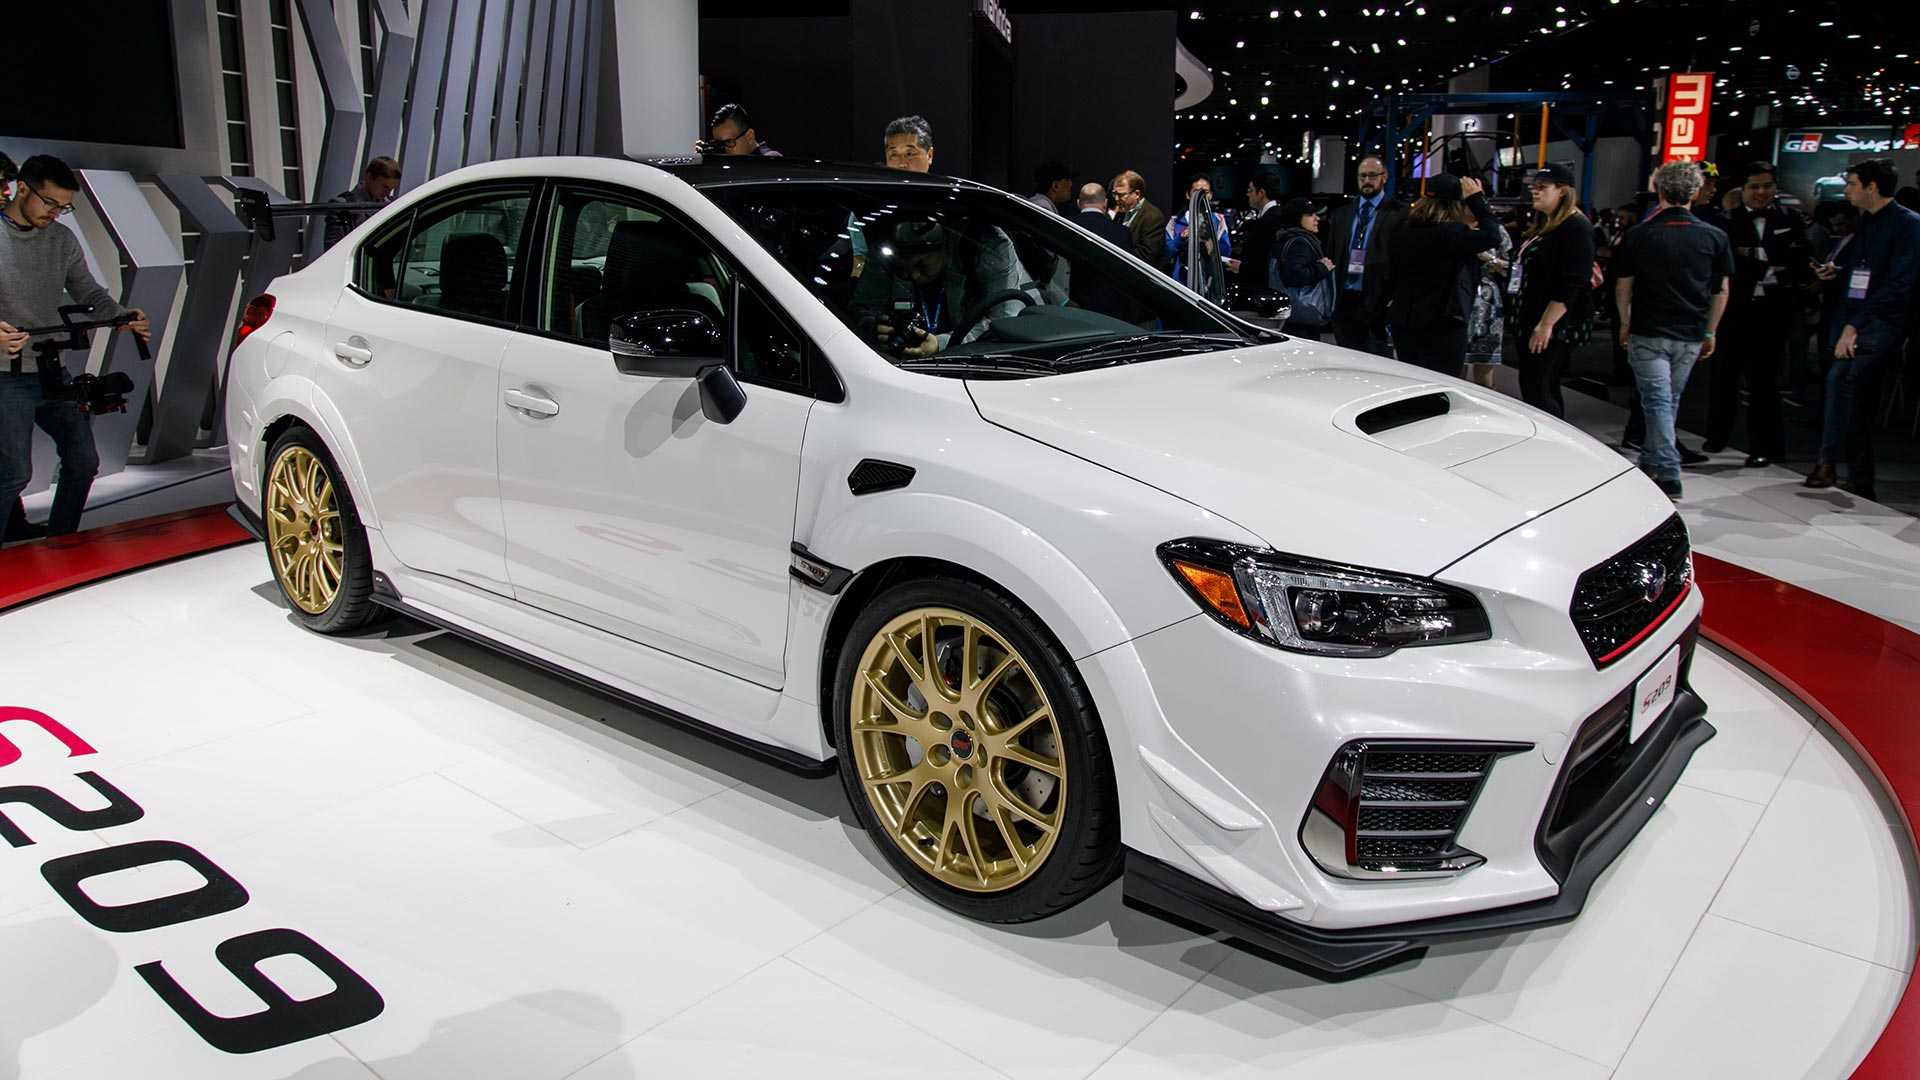 54 Best 2019 Subaru Impreza Wrx Prices